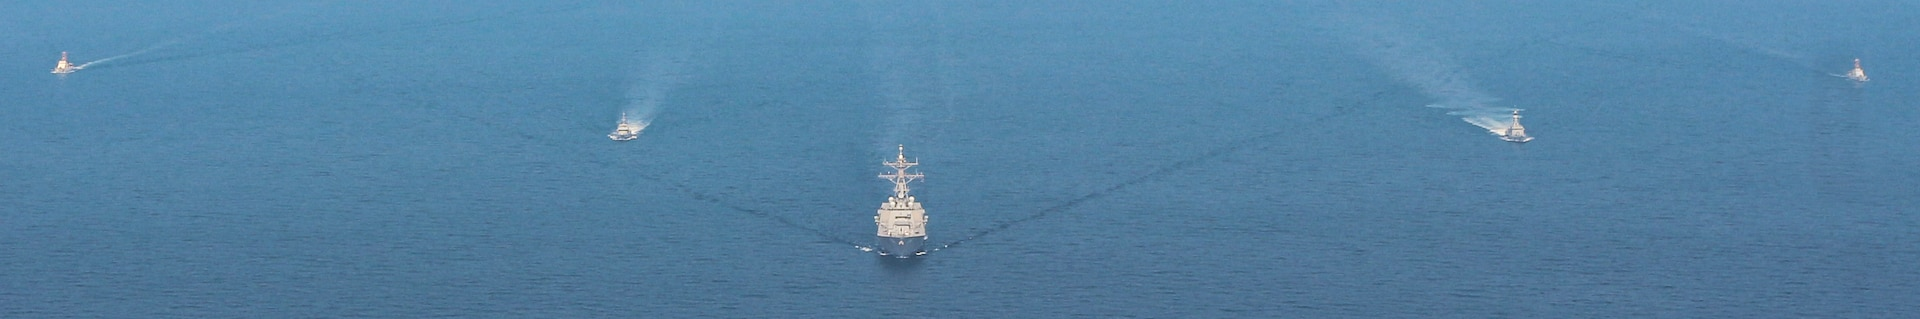 201105-N-N0146-1589 ARABIAN GULF (Nov. 05 2020) The guided-missile destroyer USS Ralph Johnson (DDG 114), Kuwait Naval Force missile boat Al- Saadi (P 3723), Kuwait Coast Guard fast patrol boat Marzoug (P 314) and U.S. Coast Guard patrol boats USCGC Aquidneck (WPB 1309) and USCGC Monomoy (WPB 1326) steam in formation during a joint maritime security patrol exercise in the Arabian Gulf, Nov. 5. Ralph Johnson is part of Nimitz Carrier Strike Group and is deployed to the U.S. 5th Fleet area of operations to ensure maritime stability and security in the Central Region, connecting the Mediterranean and Pacific through the Western Indian Ocean and three critical chokepoints to the free flow of global commerce.